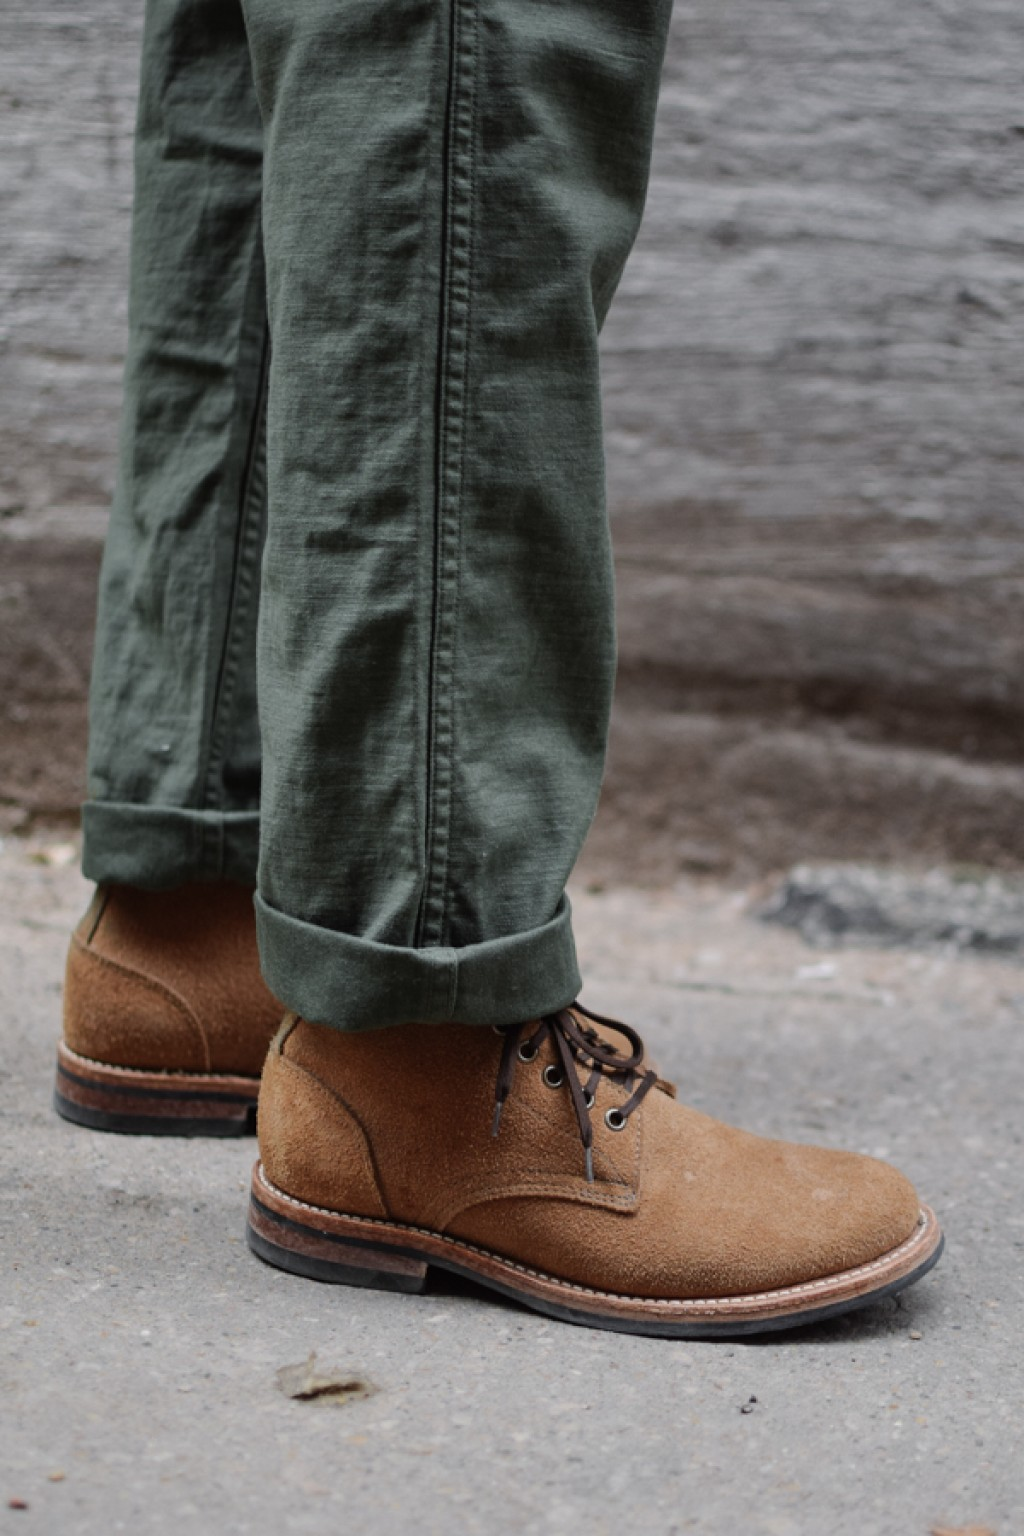 Orslow Slim Fit Army Fatigue Pants Green Cotton